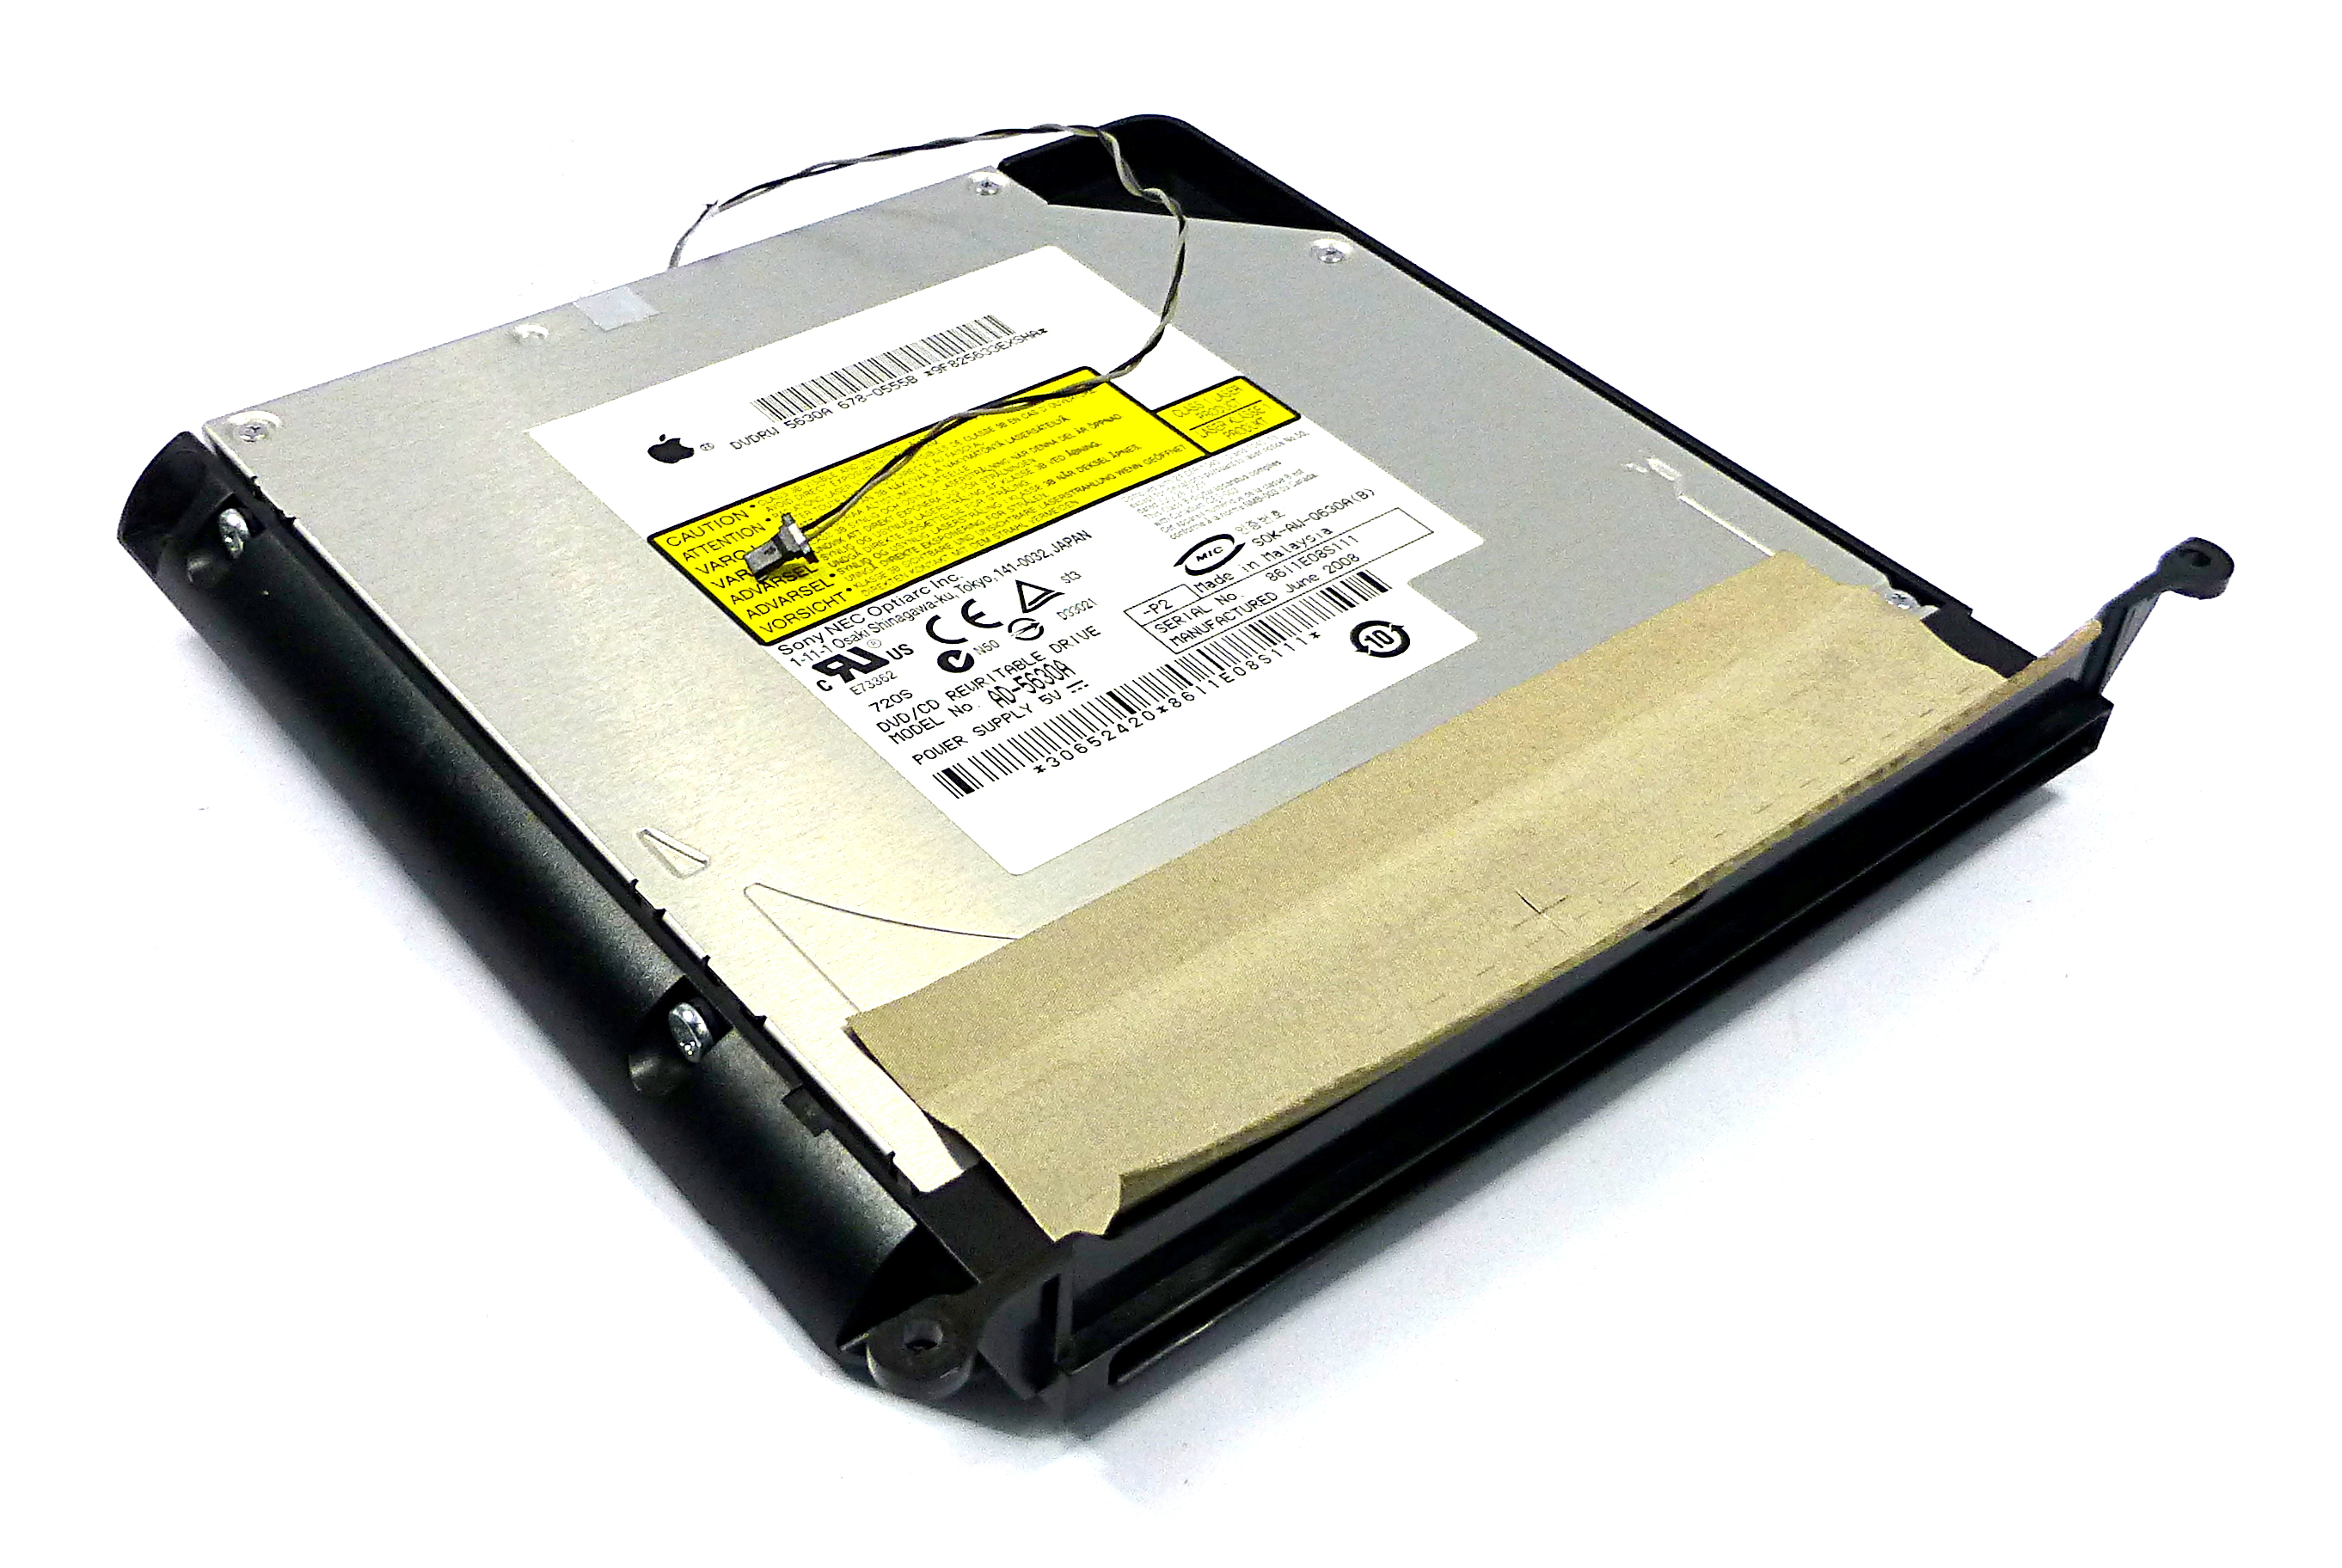 "Apple iMac 24"" A1224 DVD/CD Rewritable Optical Drive - Sony AD-5630A - 678-0555B"